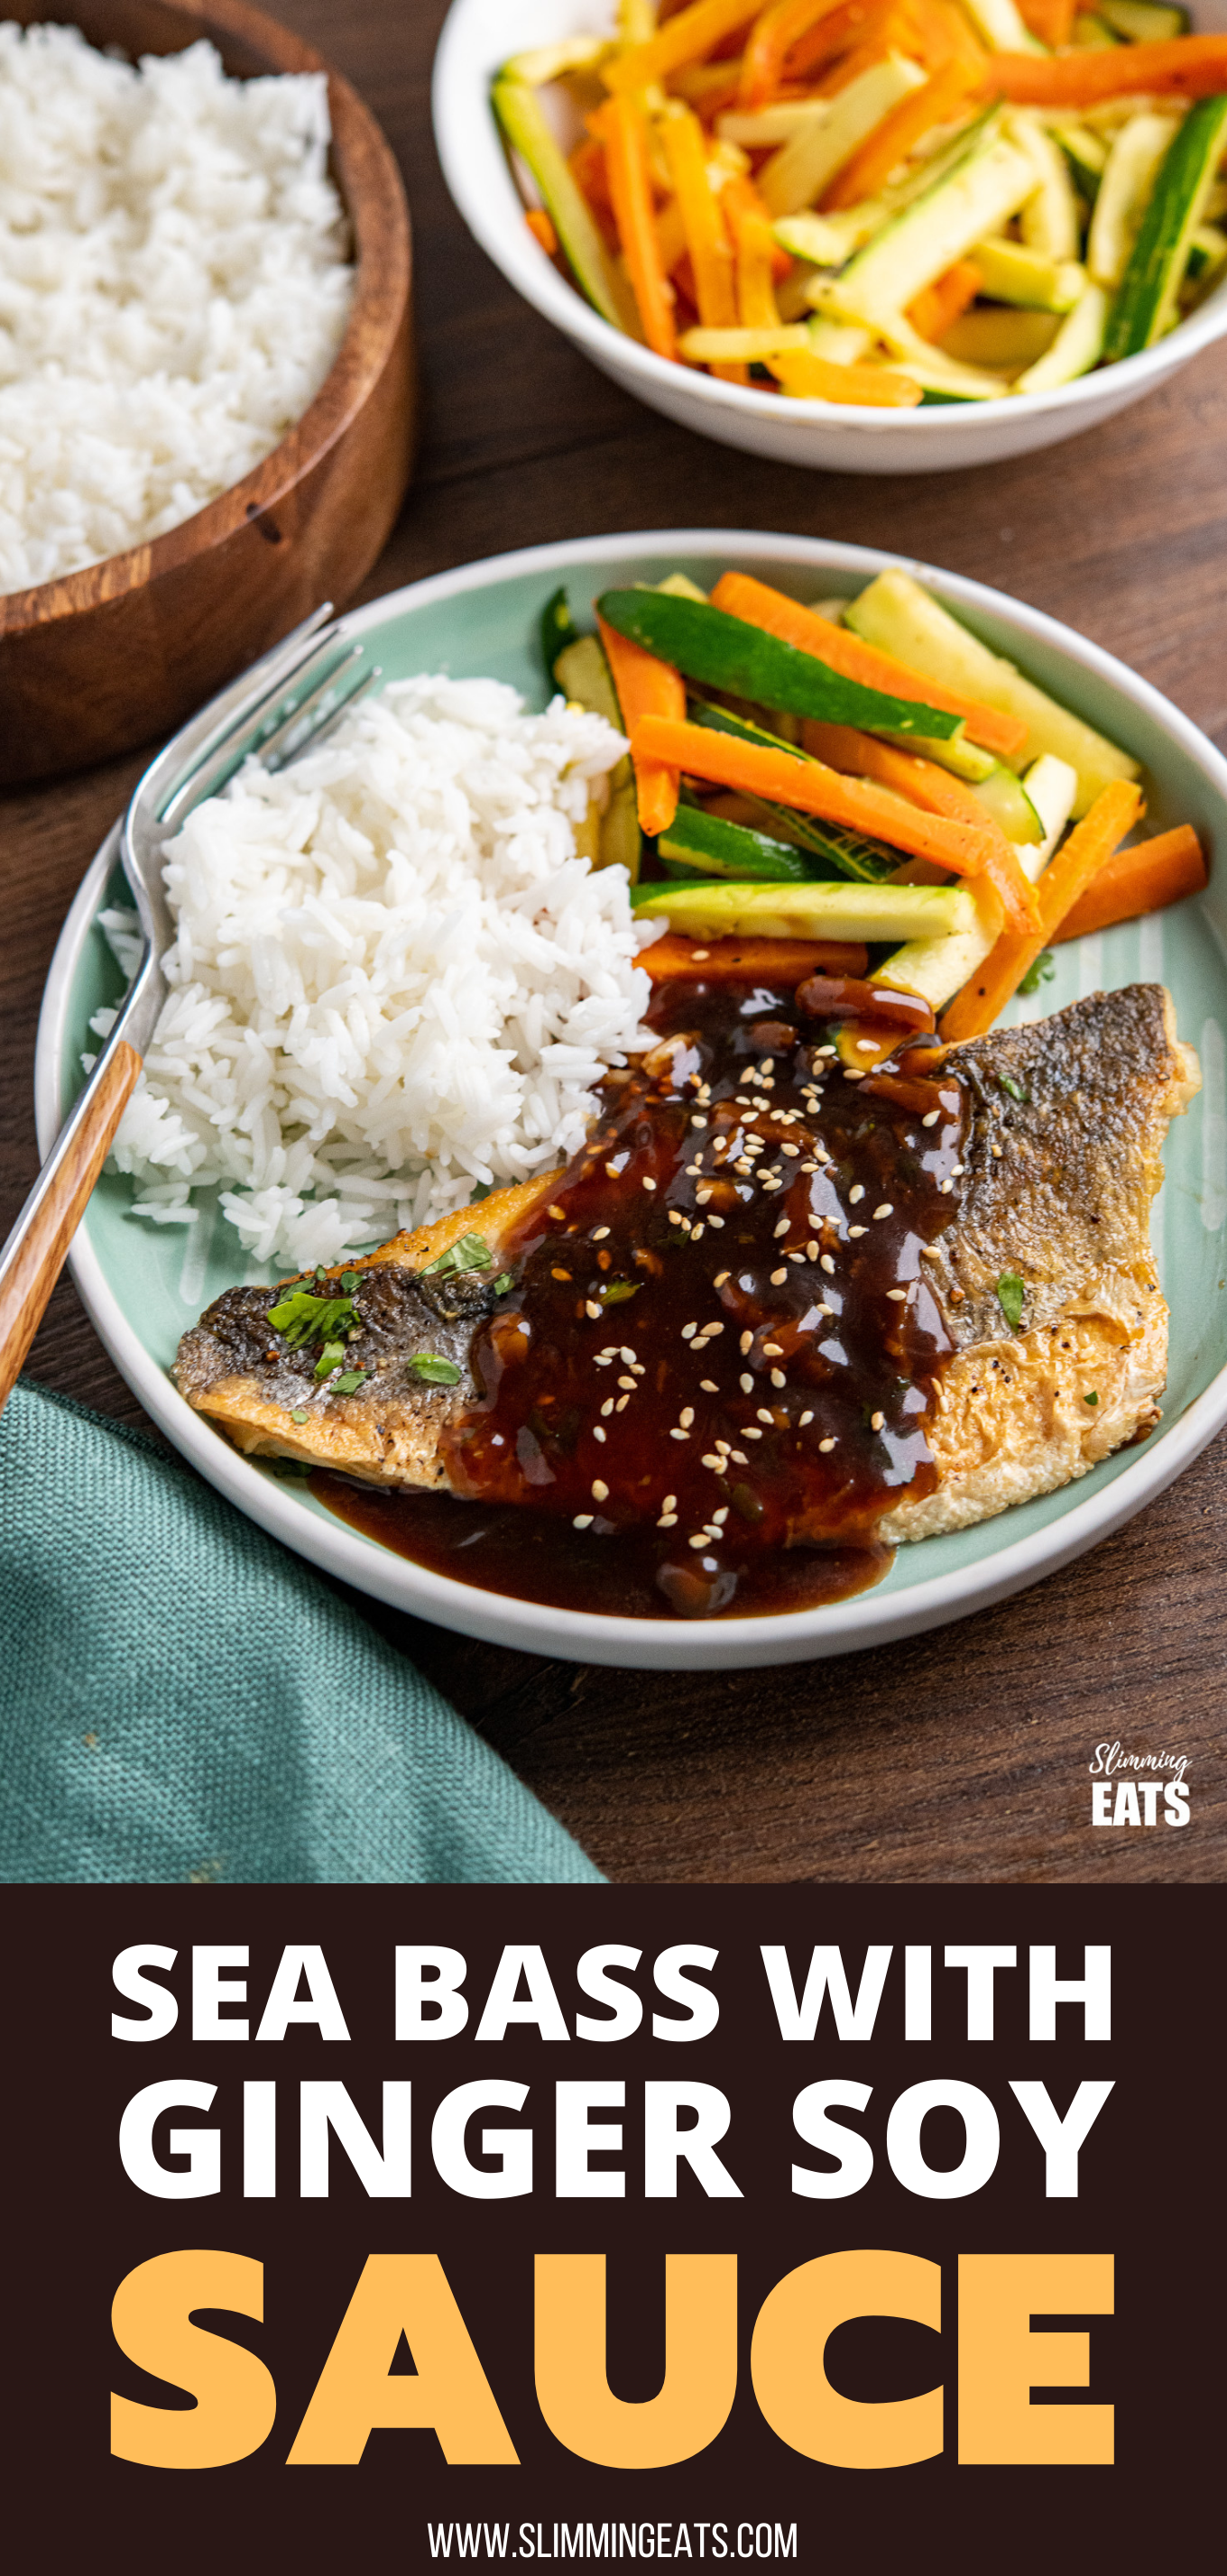 Pan-fried Sea Bass with Ginger Soy Sauce on teal plate with rice, carrot and zucchini stir fry